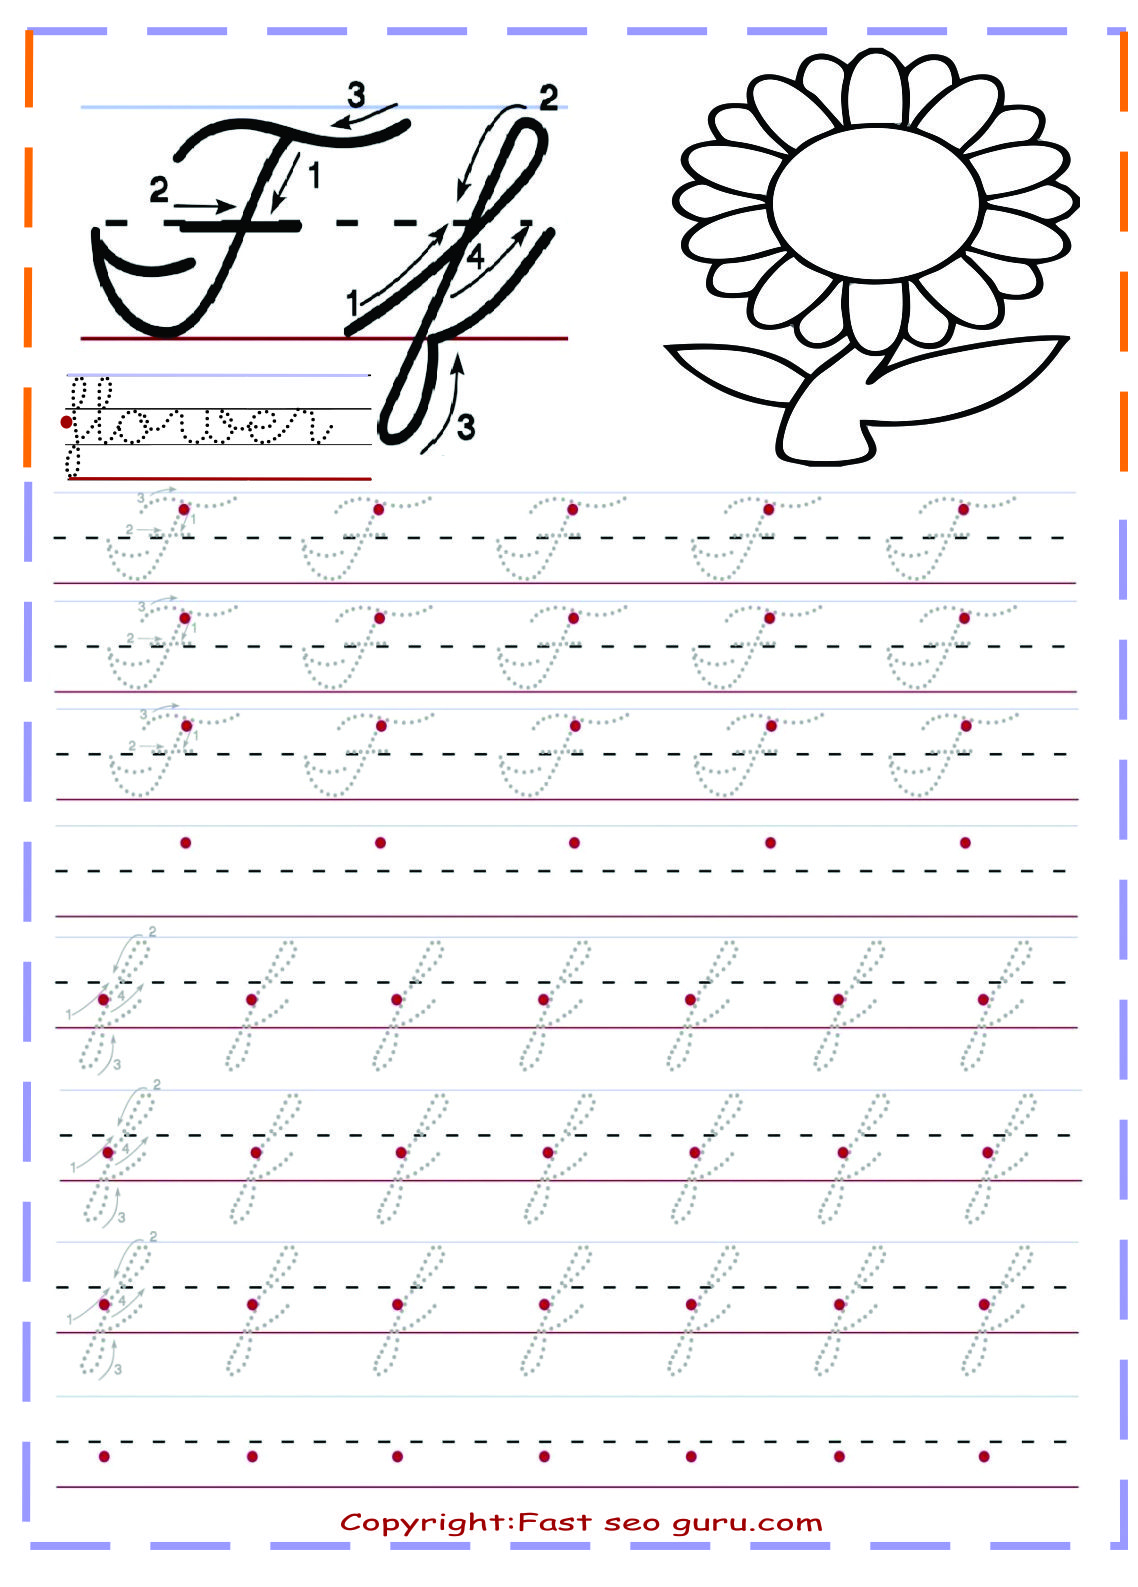 Cursive Handwriting Tracing Worksheets For Practice Letter F for Cursive Letters Tracing Sheets